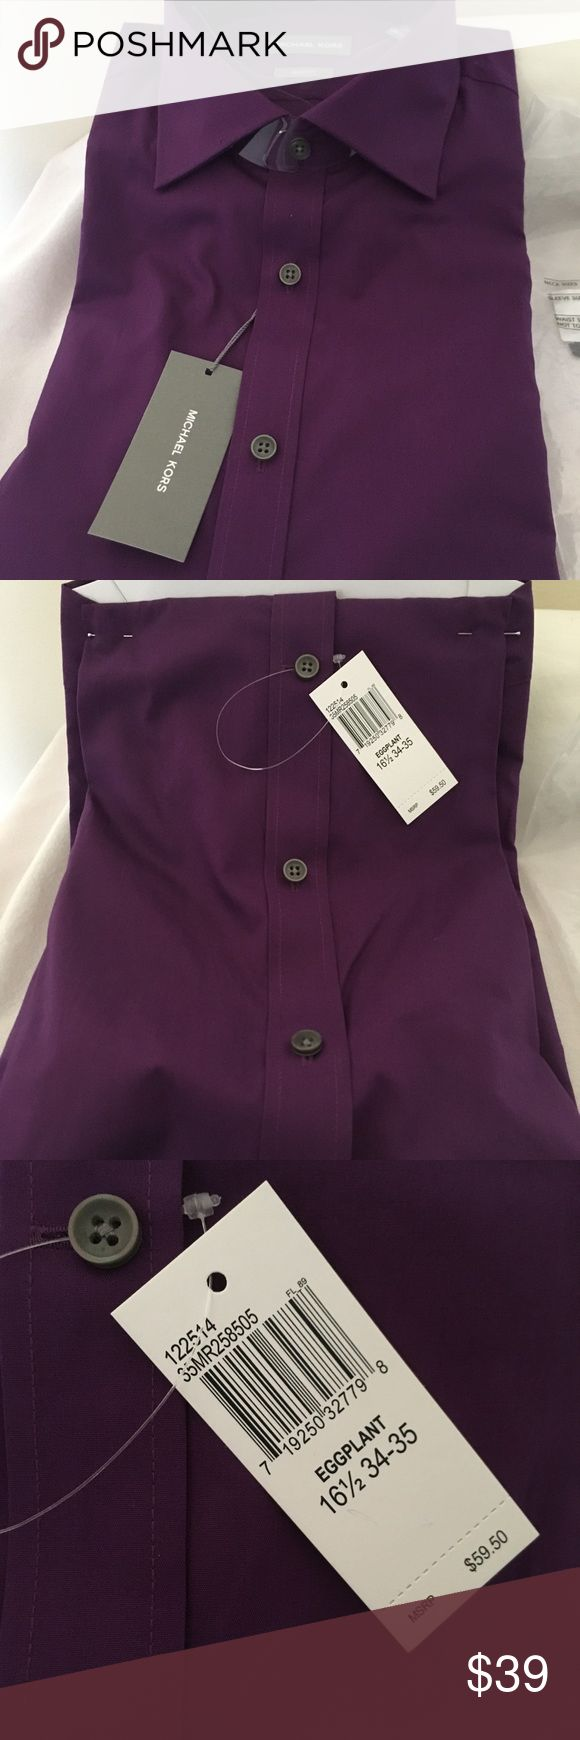 Michael Kors Men's Slim Fit Dress Shirt -Eggplant Eggplant color Men Size Chart in Pic Michael Kors Shirts Dress Shirts